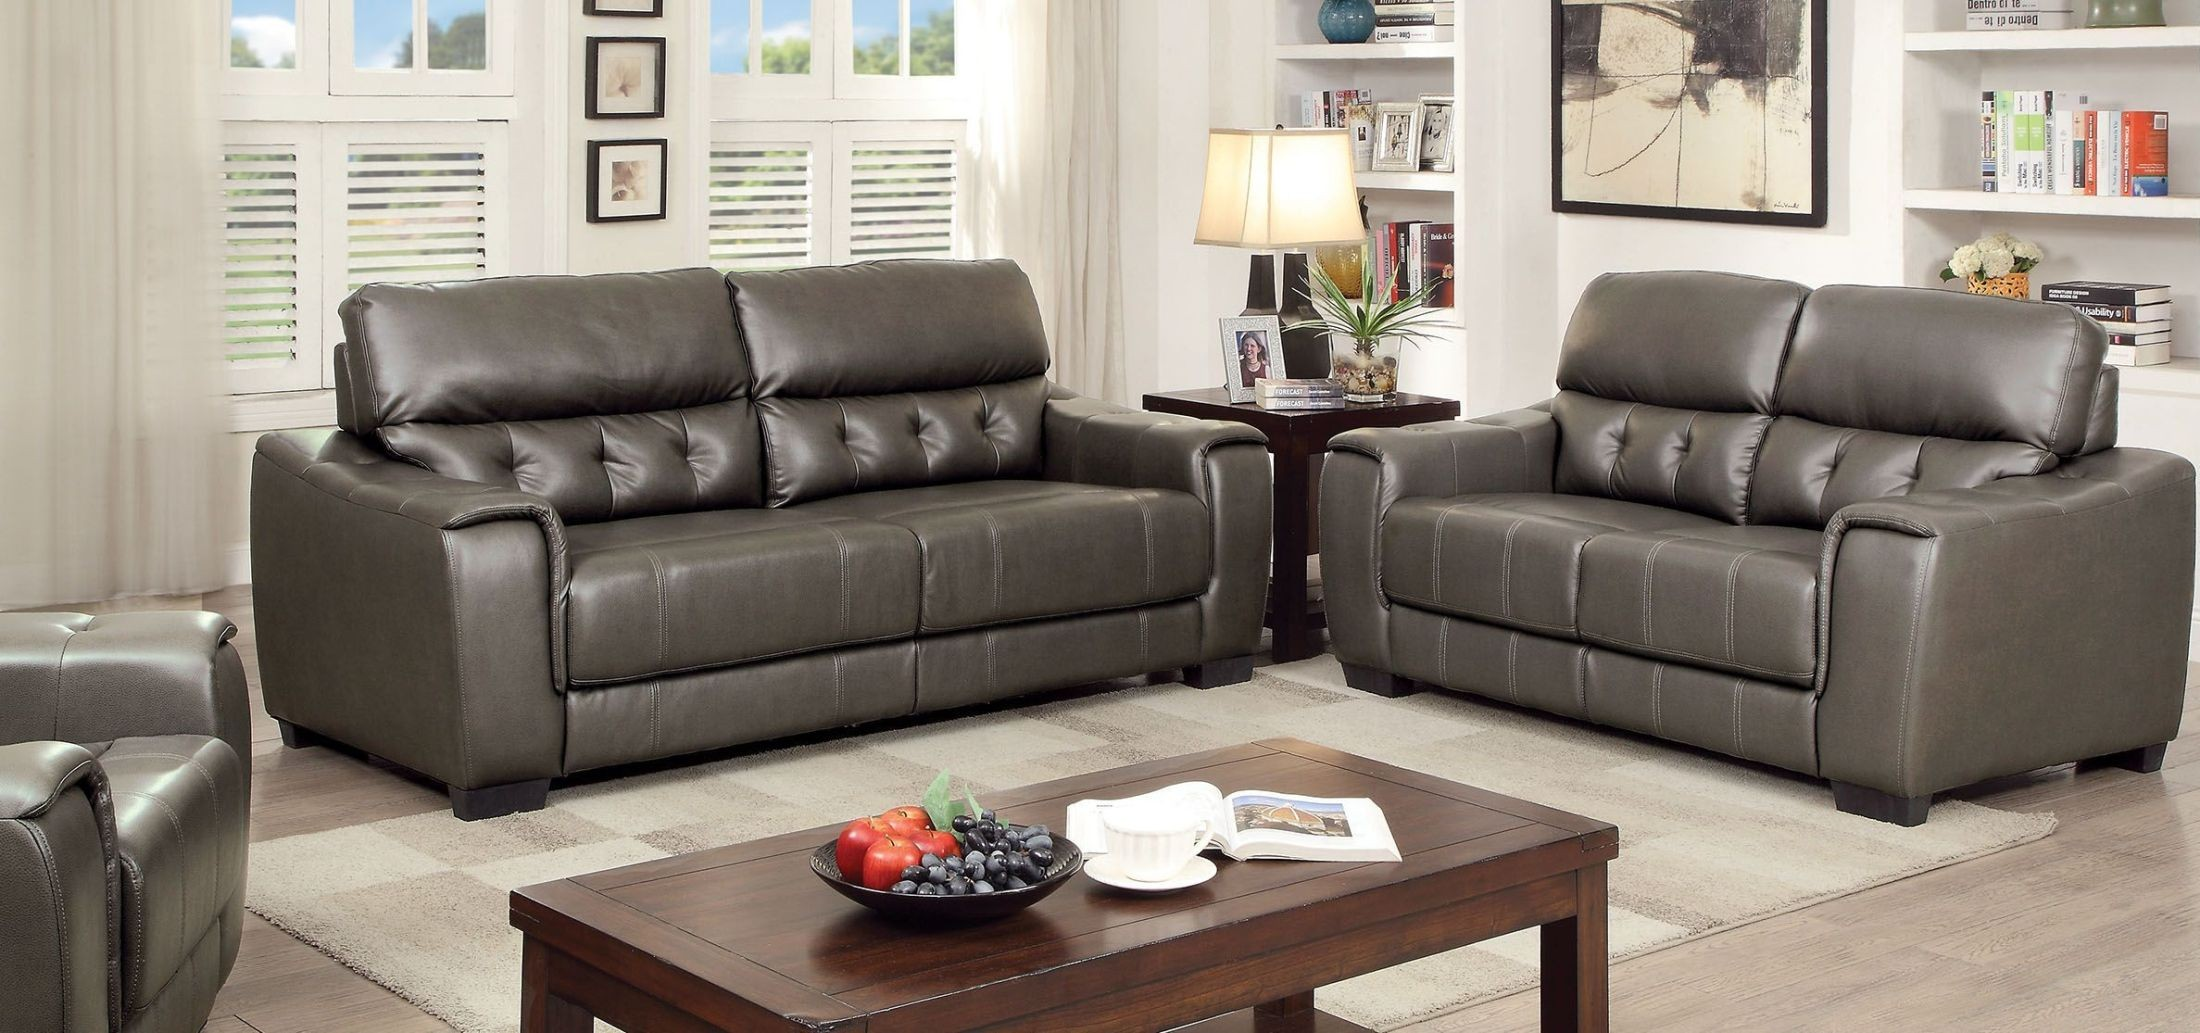 randa dark gray living room set cm6797 sf furniture of america. Black Bedroom Furniture Sets. Home Design Ideas